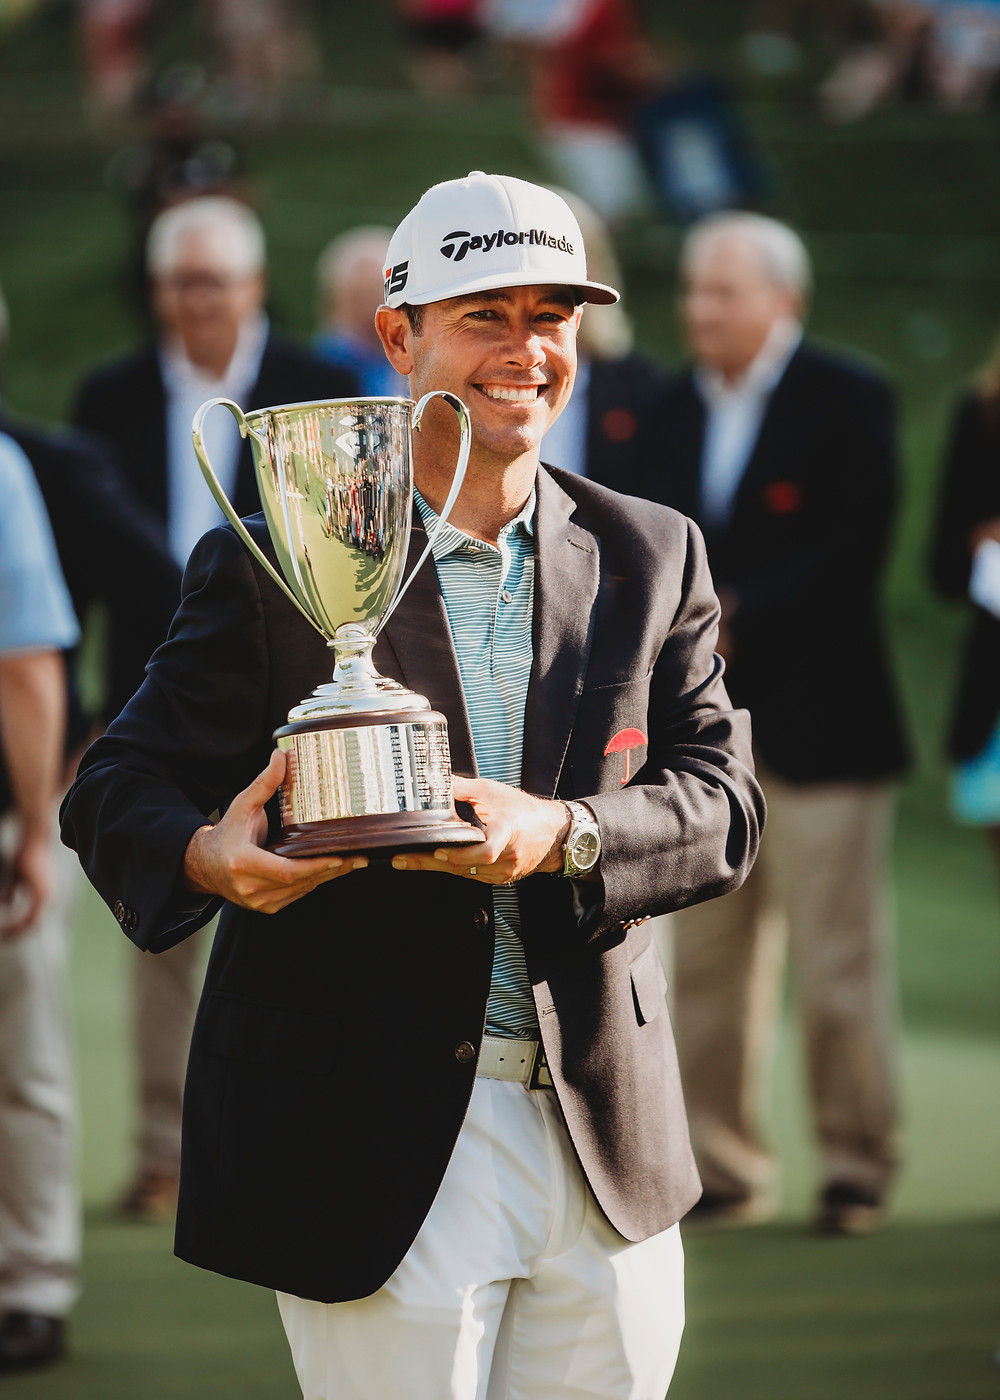 https://www.golfdigest.com/story/chez-reavie-finally-has-his-encore-tour-win-and-a-hell-of-a-story-about-how-it-probably-shouldnt-have-happened